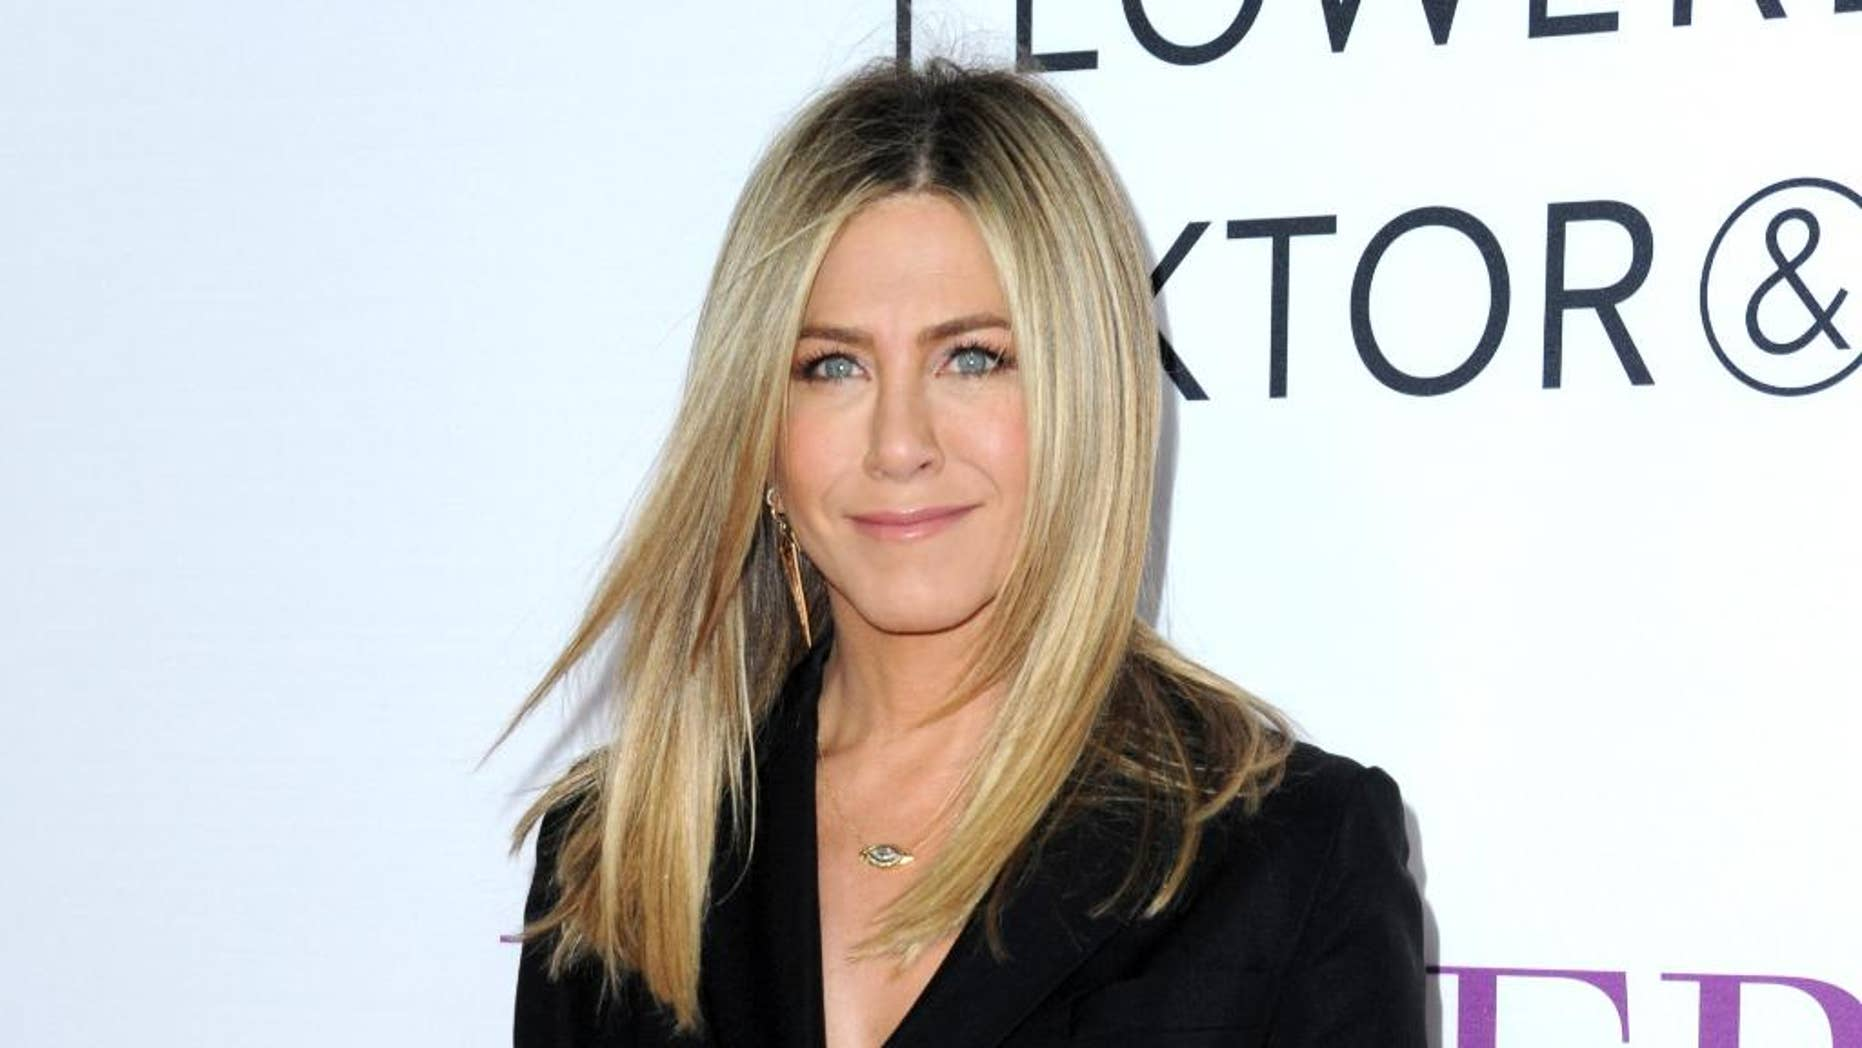 """FILE - In this April 13, 2016 file photo, Jennifer Aniston arrives at the Los Angeles premiere of """"Mother's Day."""" Aniston says she's not pregnant and she's fed up with predatory tabloid culture that defines women by their looks and maternal status.  (Photo by Richard Shotwell/Invision/AP, File)"""